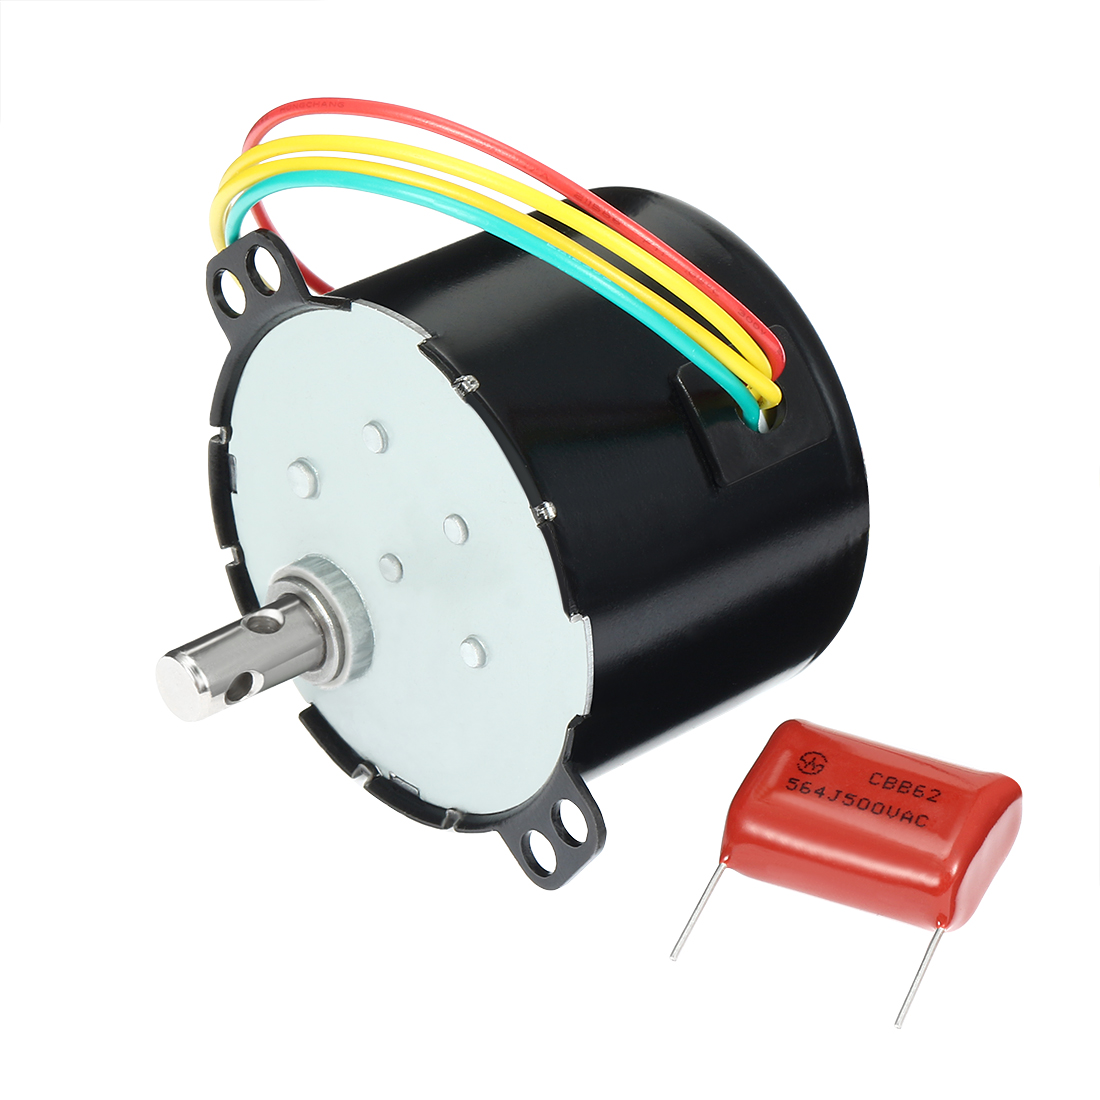 AC 110V 50Hz 6W 5RPM Synchronous Motor Output Speed Reduction Geared Box